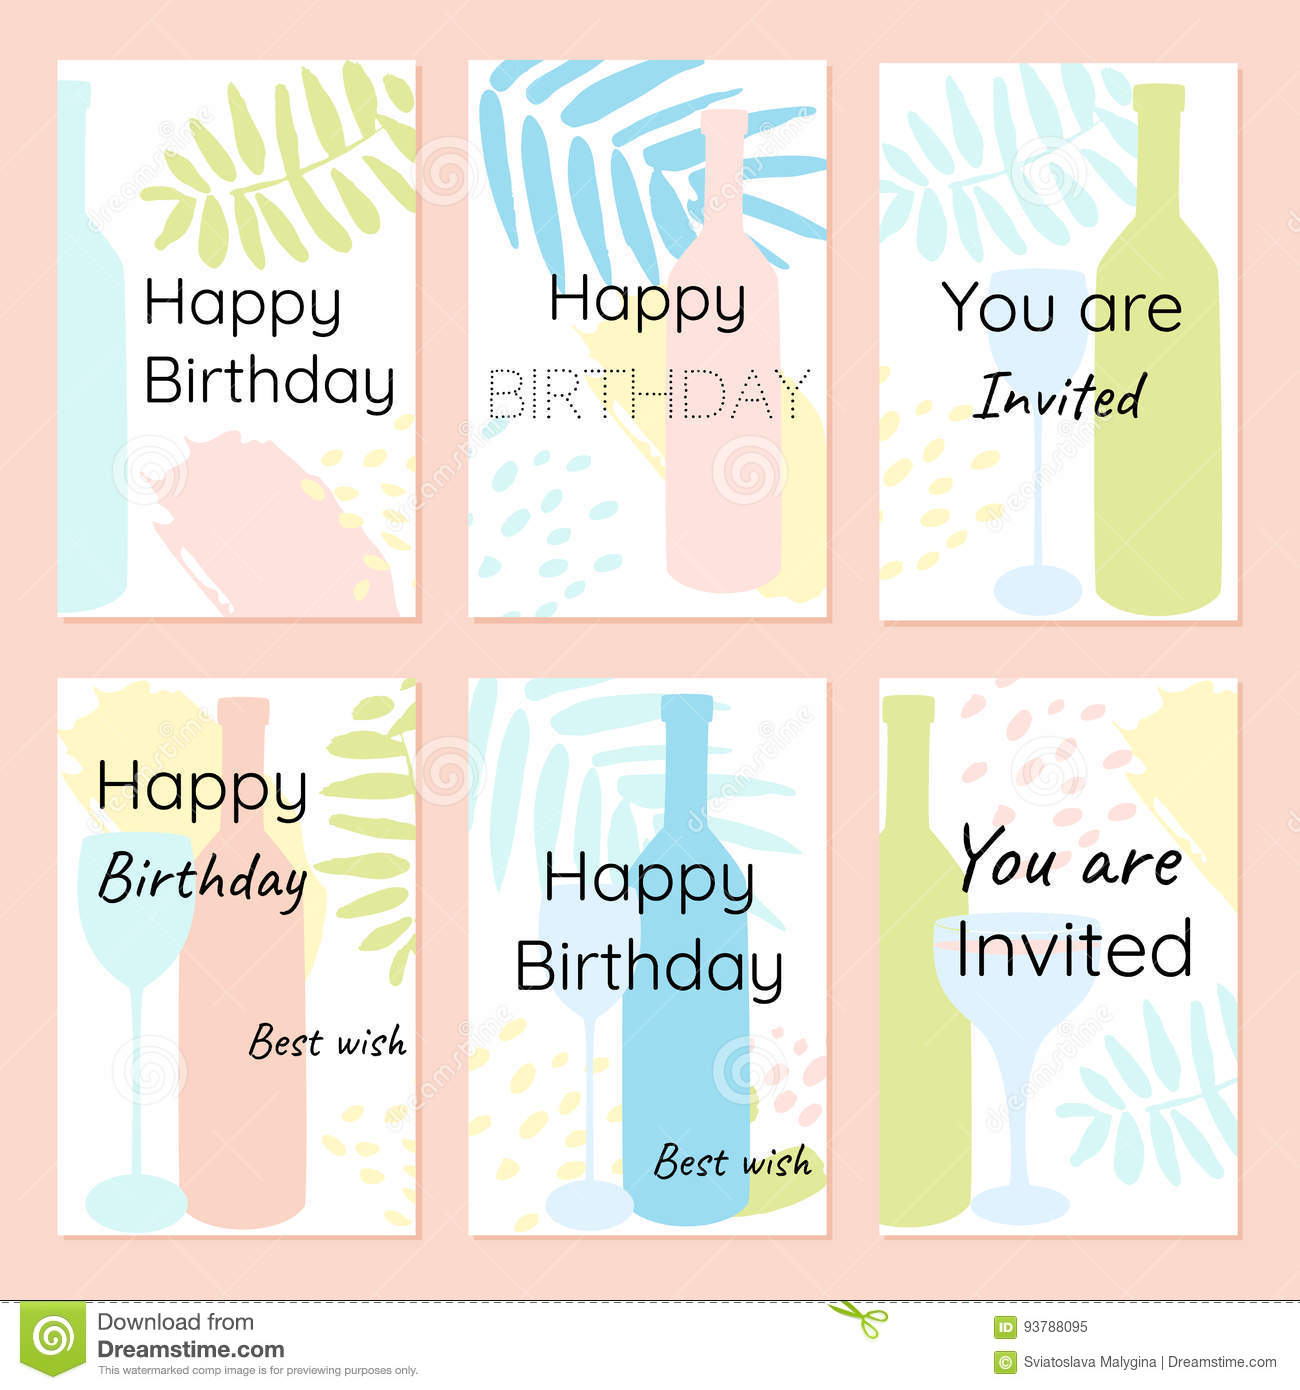 Happy birthday and invitation vector cards in a minimalist style download comp stopboris Image collections